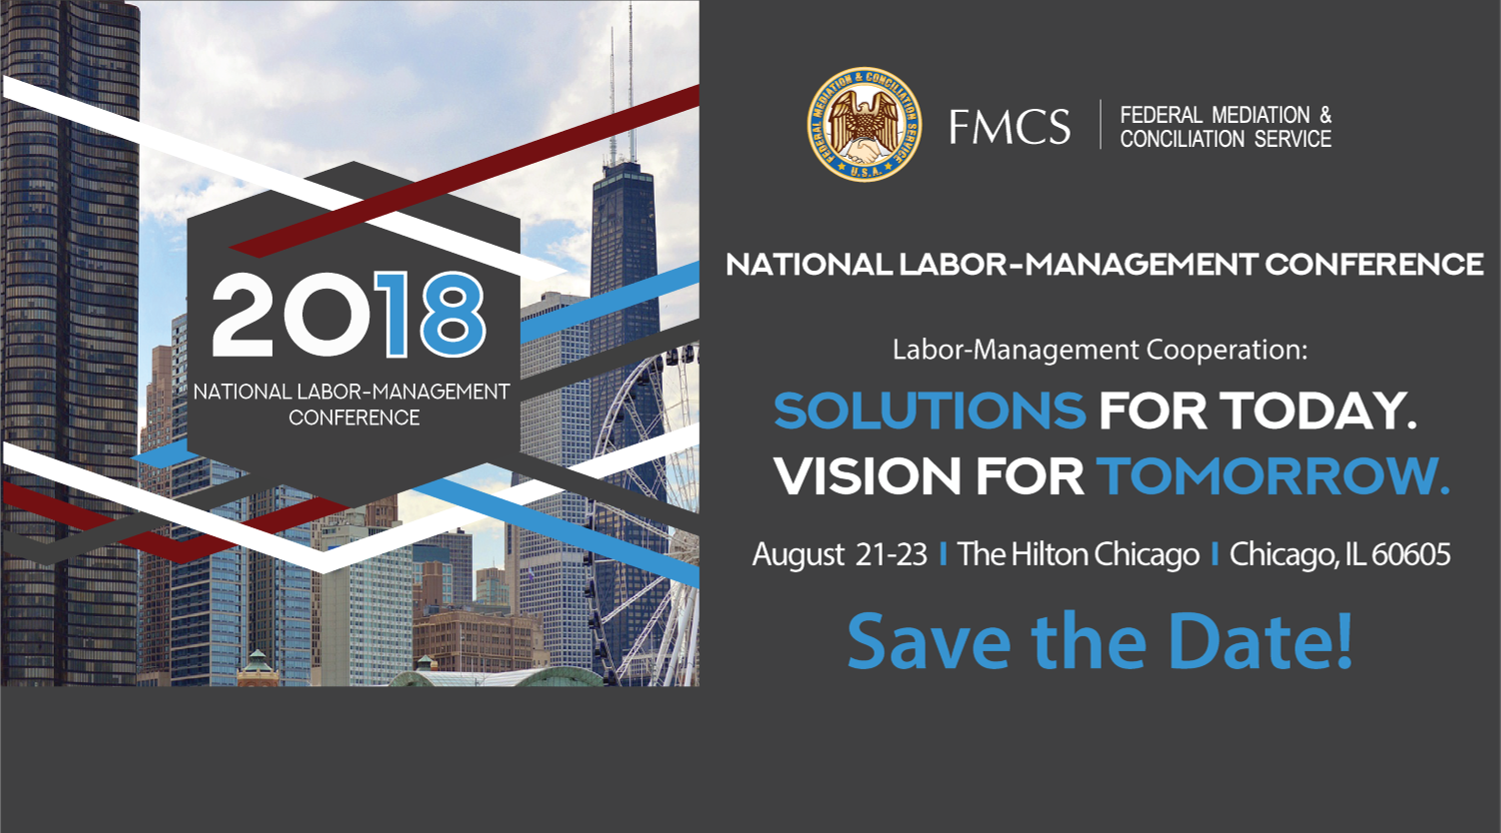 National Labor Management Conference